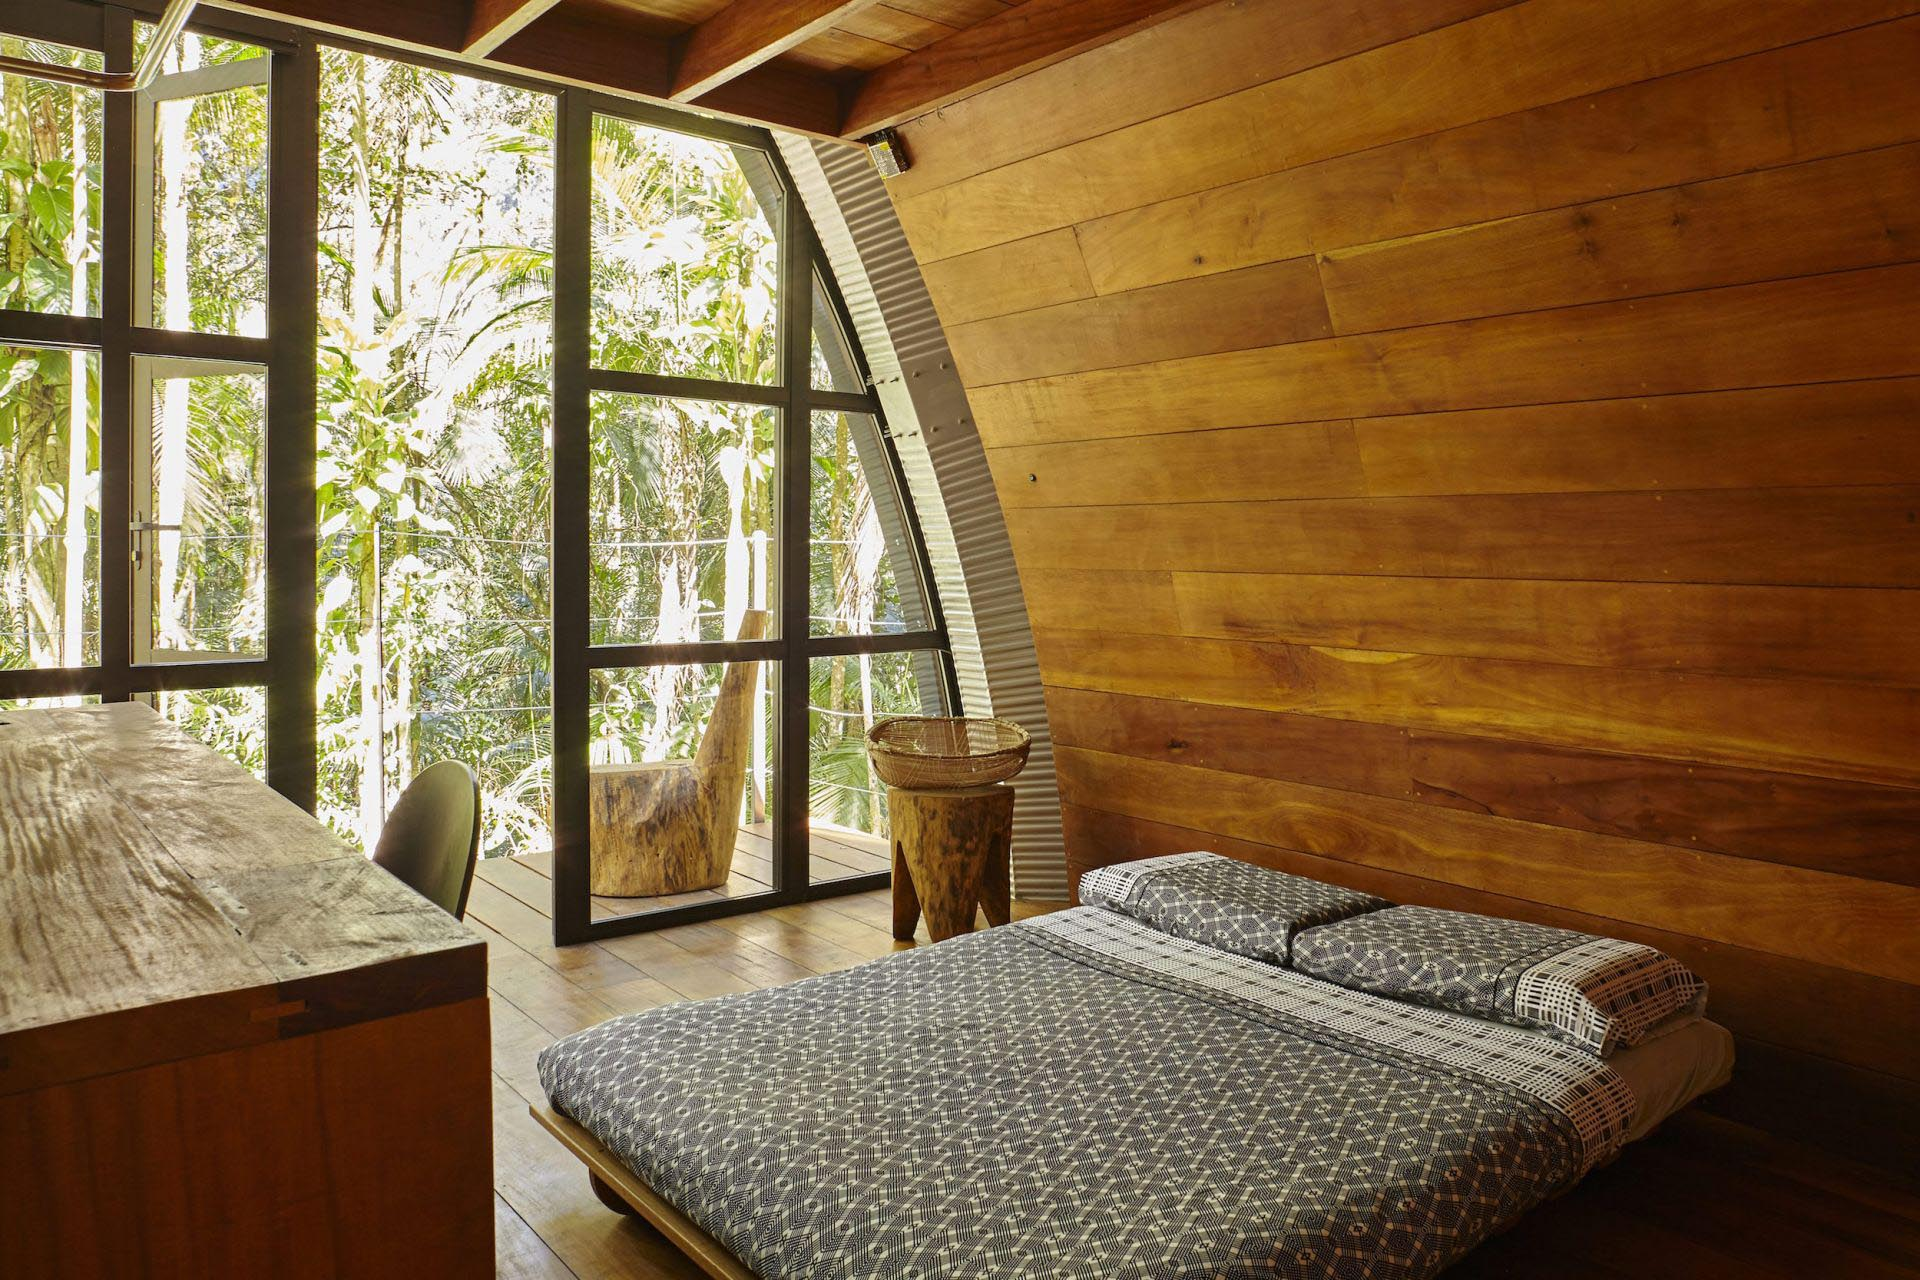 Wood details adds a warmth to the bedroom, while a door opens to the deck.